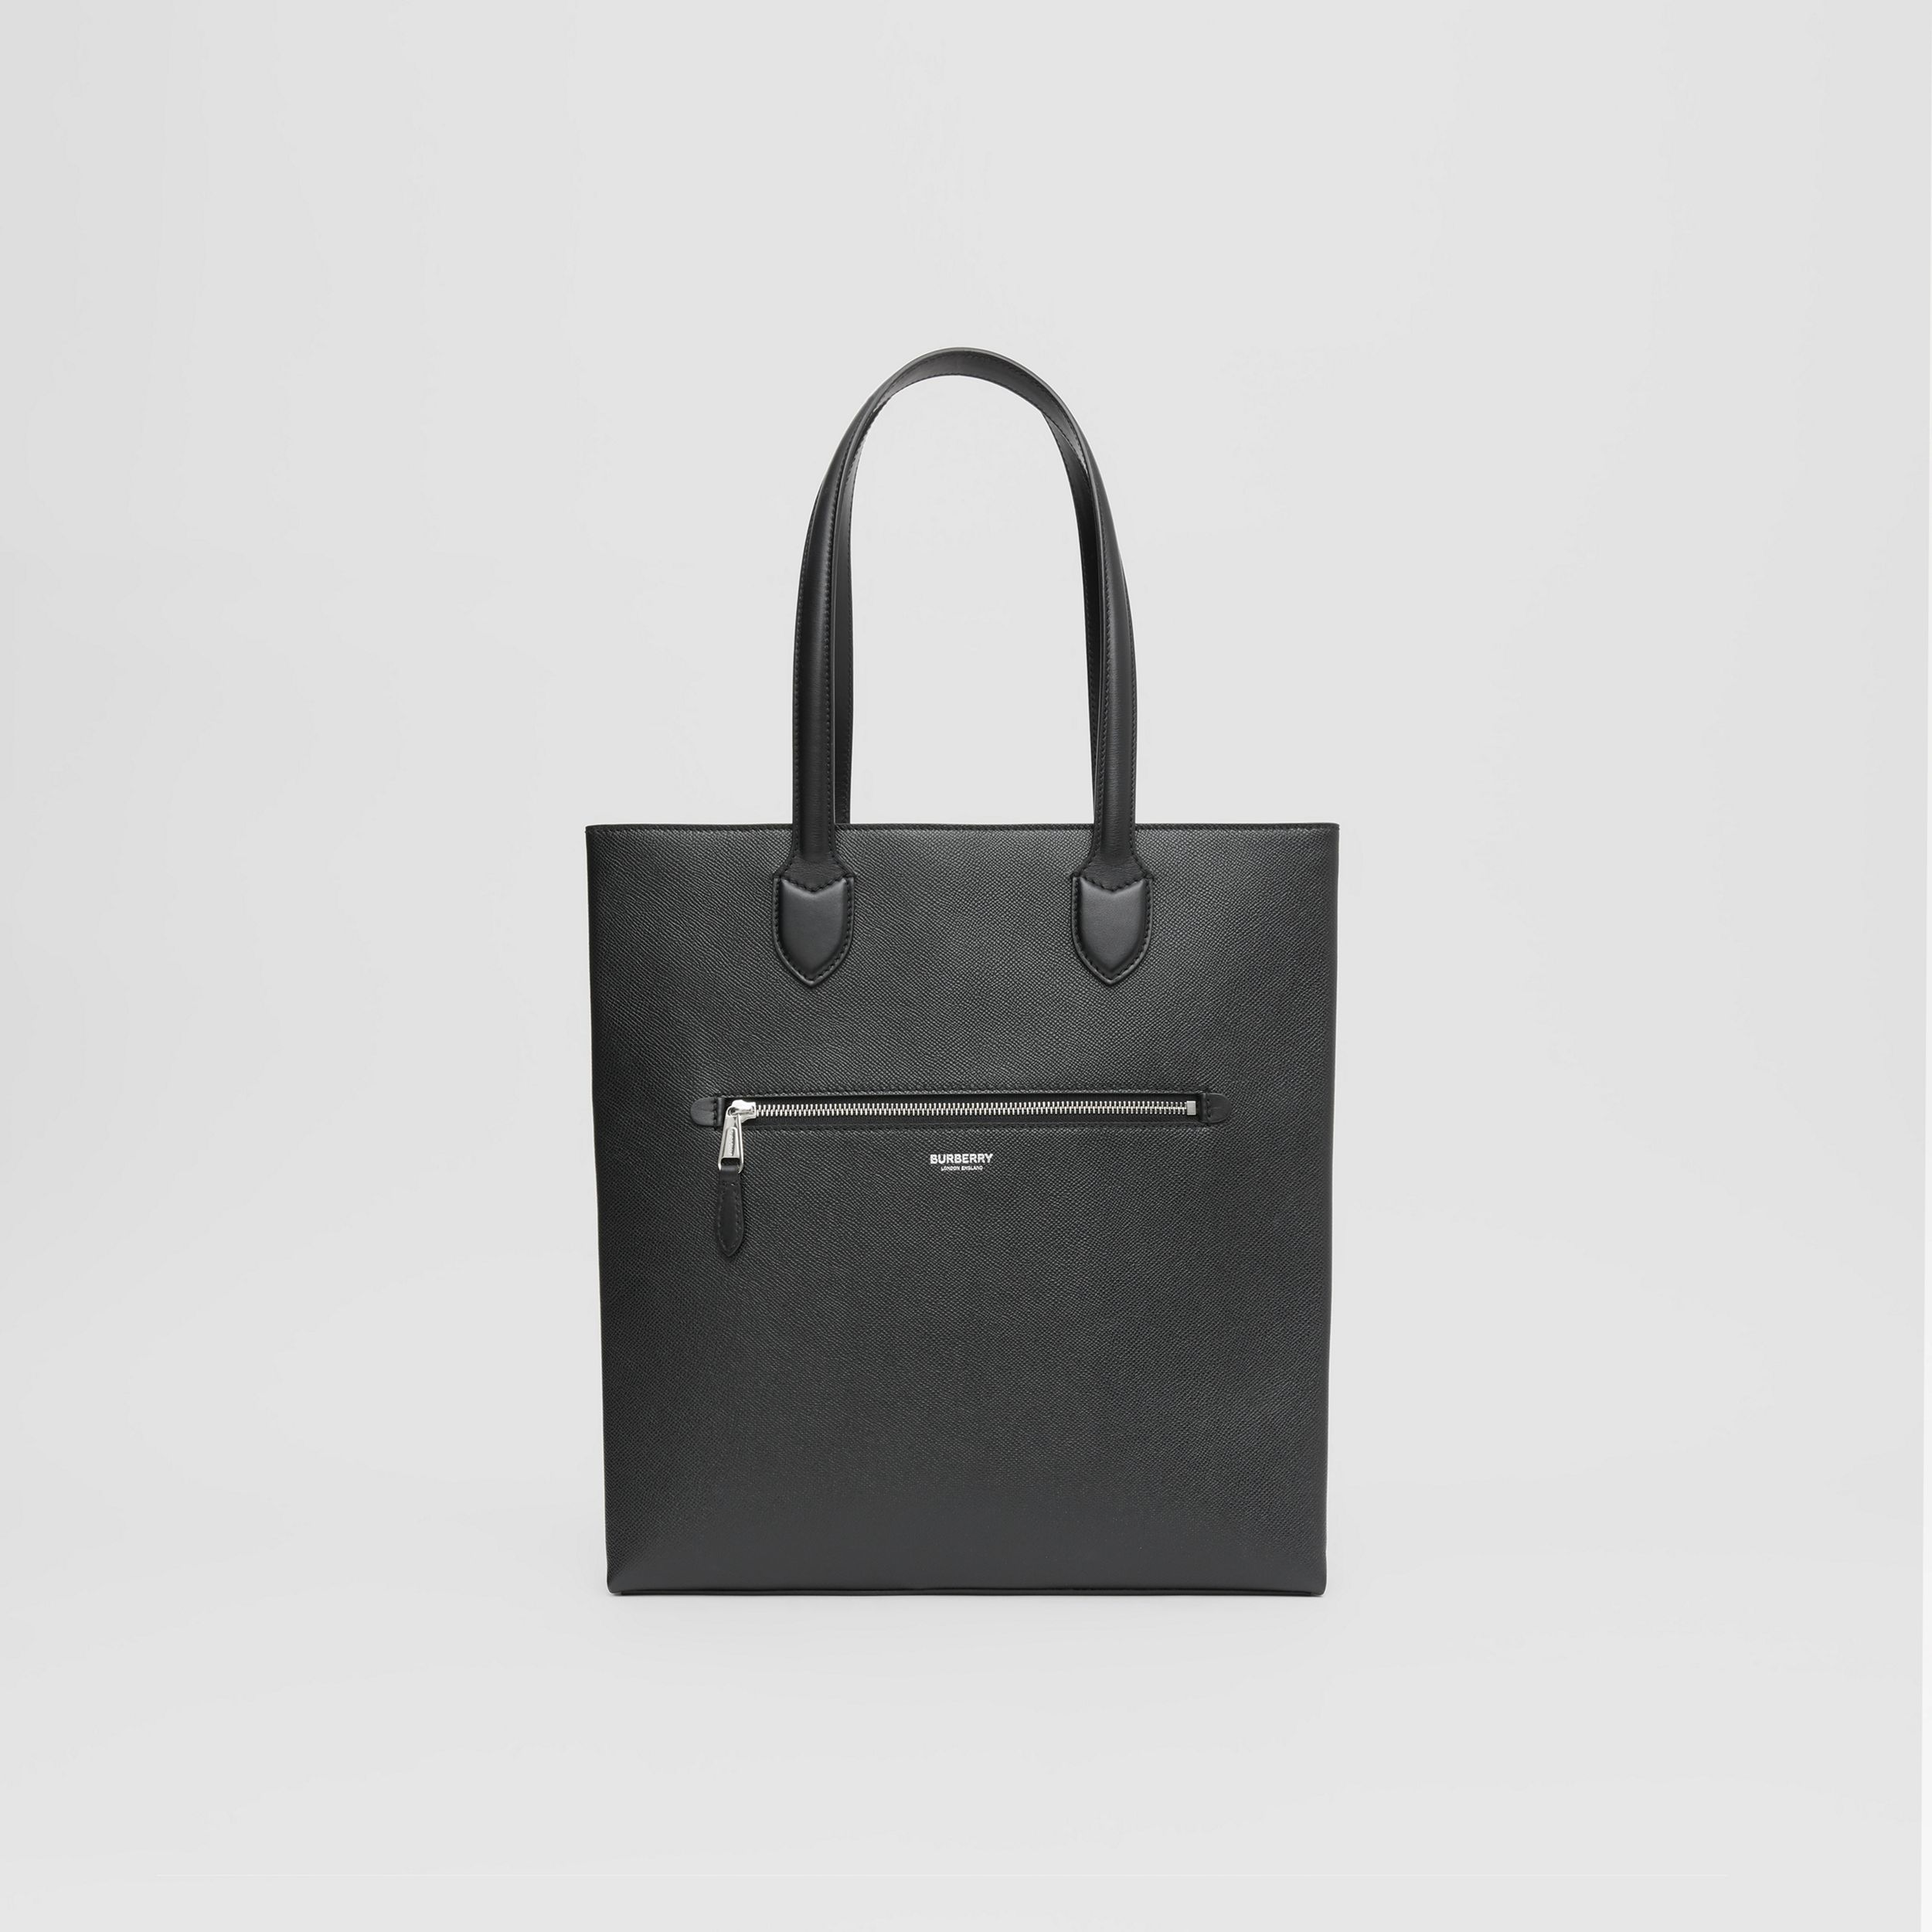 Medium Grainy Leather Tote in Black - Men | Burberry - 1